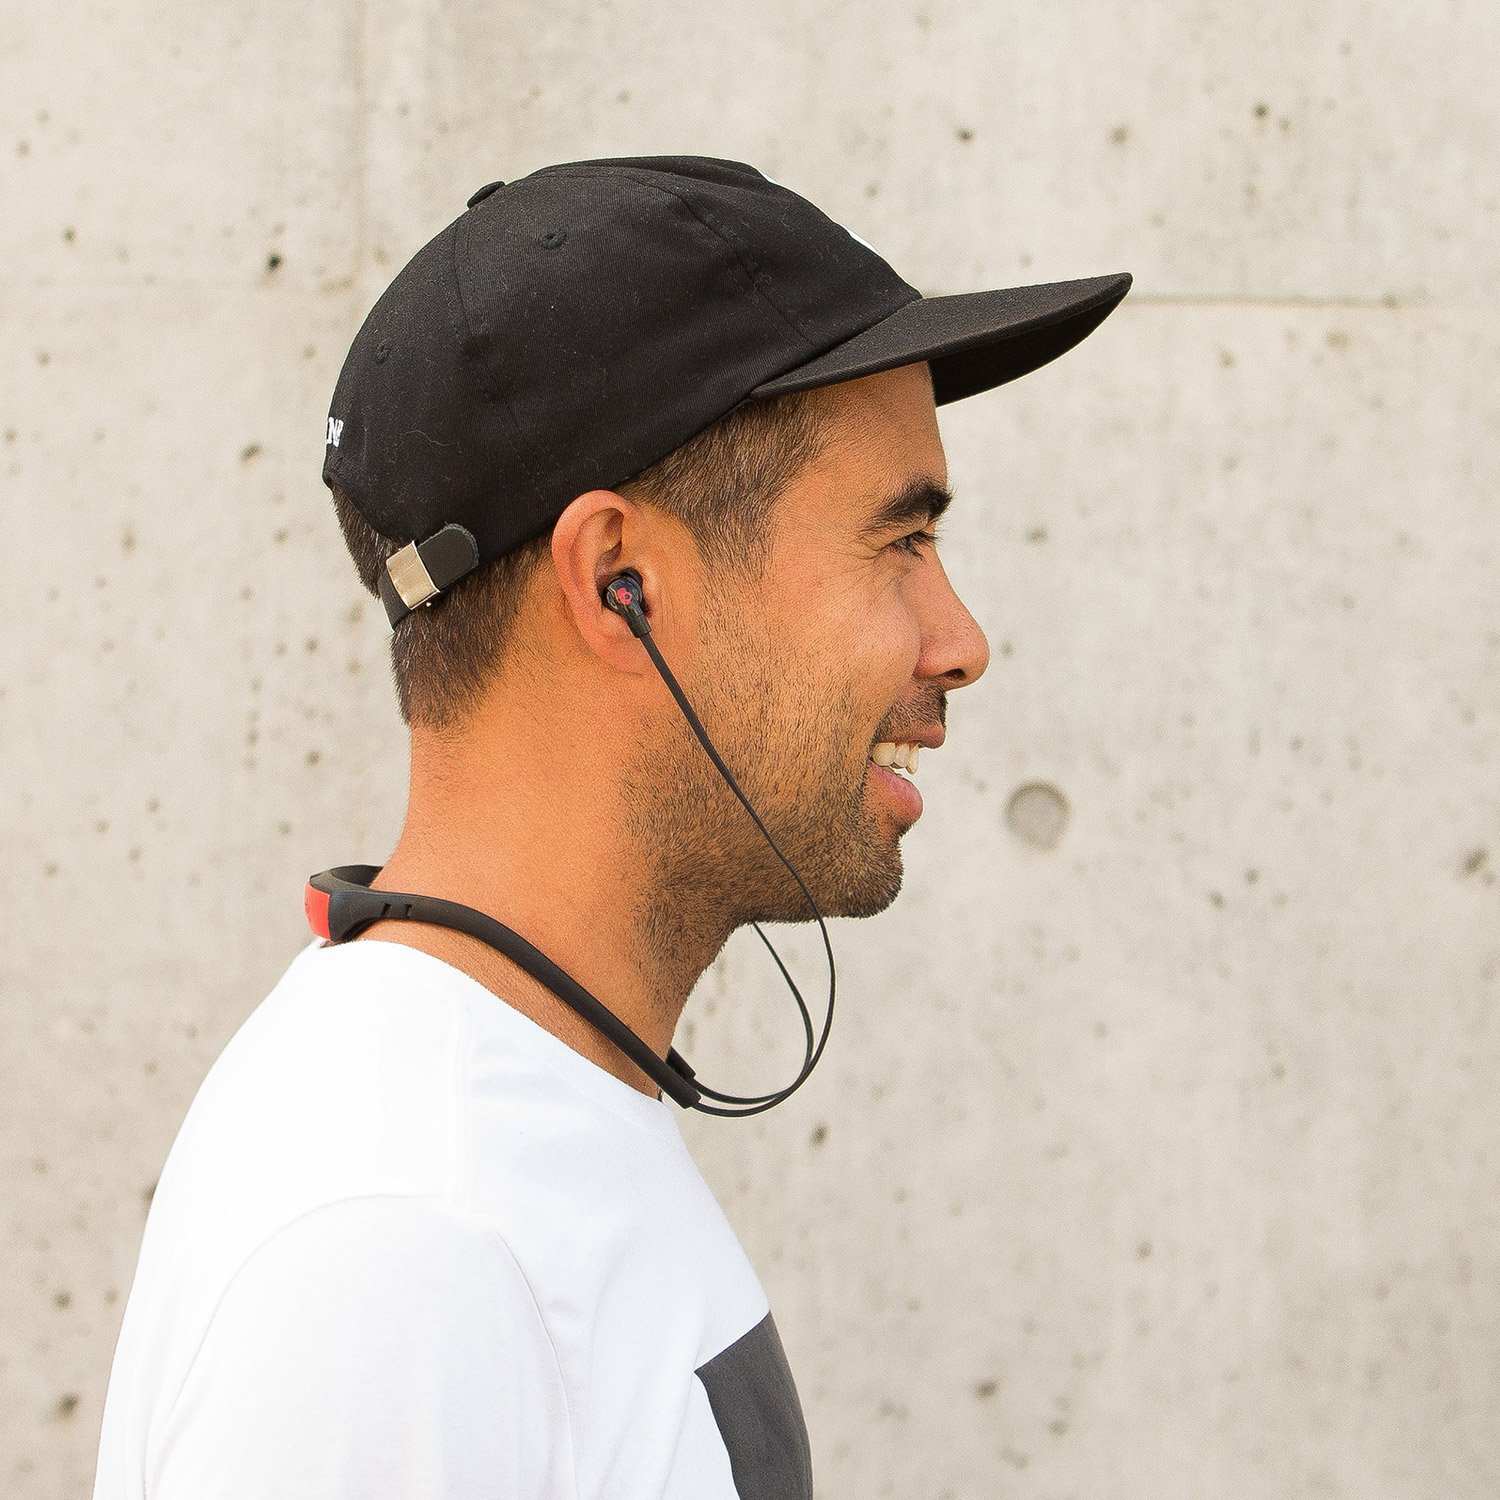 Skullcandy-Smokin-039-Buds-2-in-Ear-Bluetooth-Wireless-Earbuds-with-Microphone-New thumbnail 35